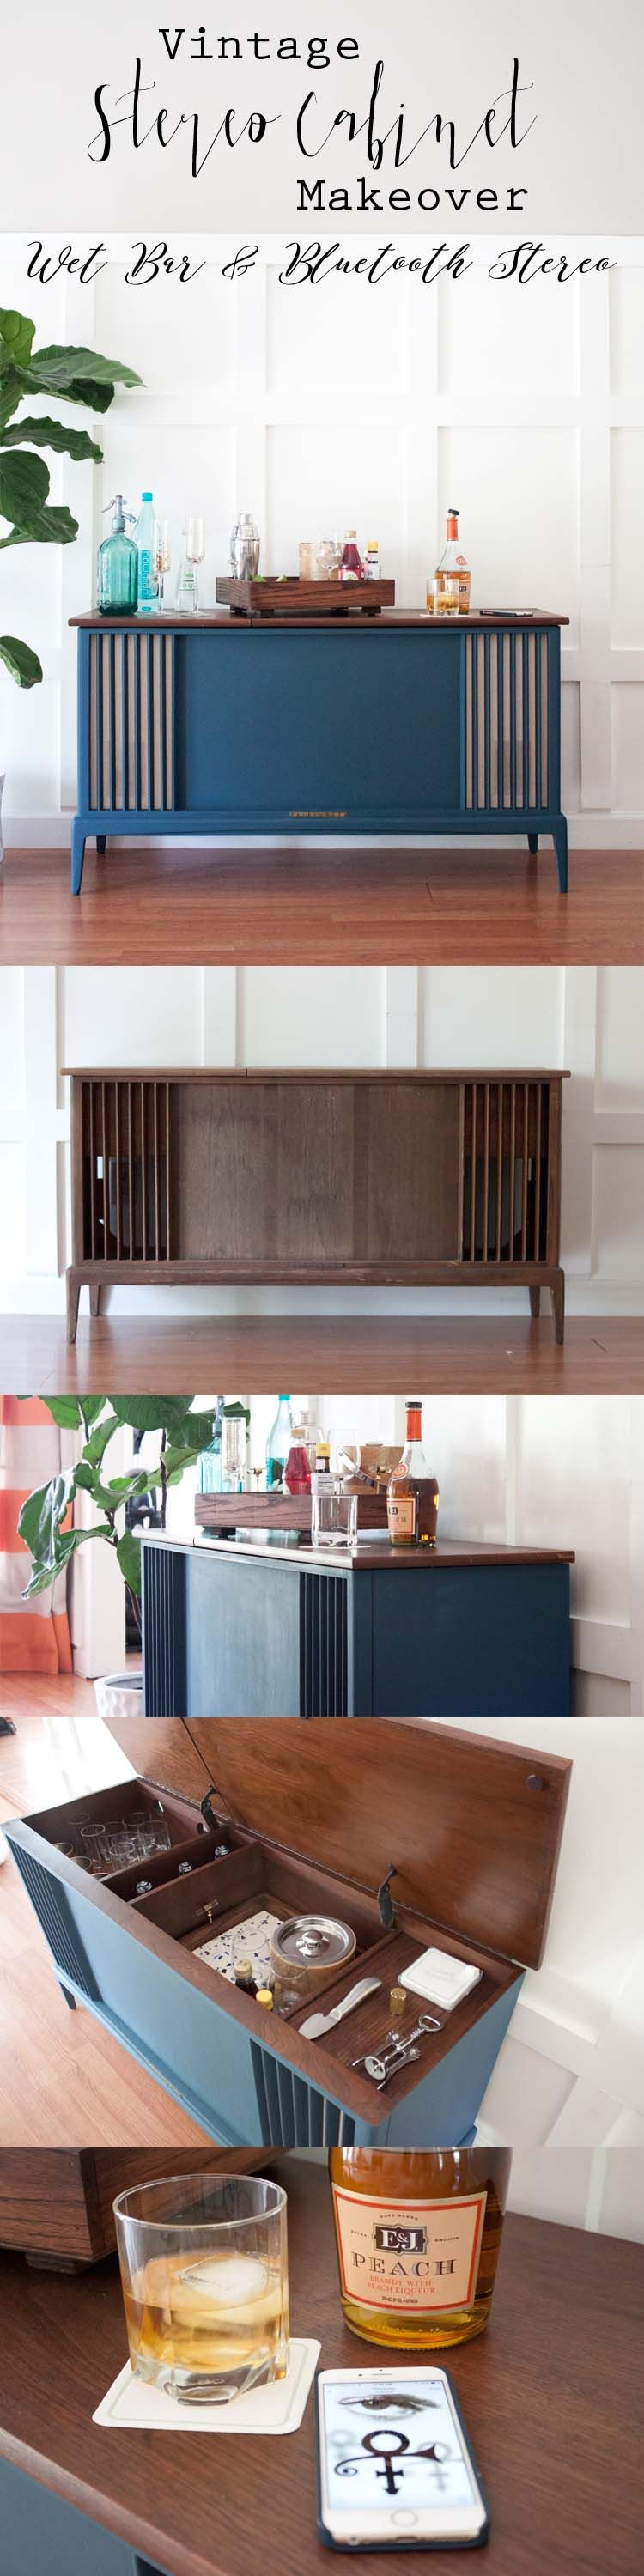 Vintage Stereo Cabinet Makeover with Bluetooth and Wet Bar ...